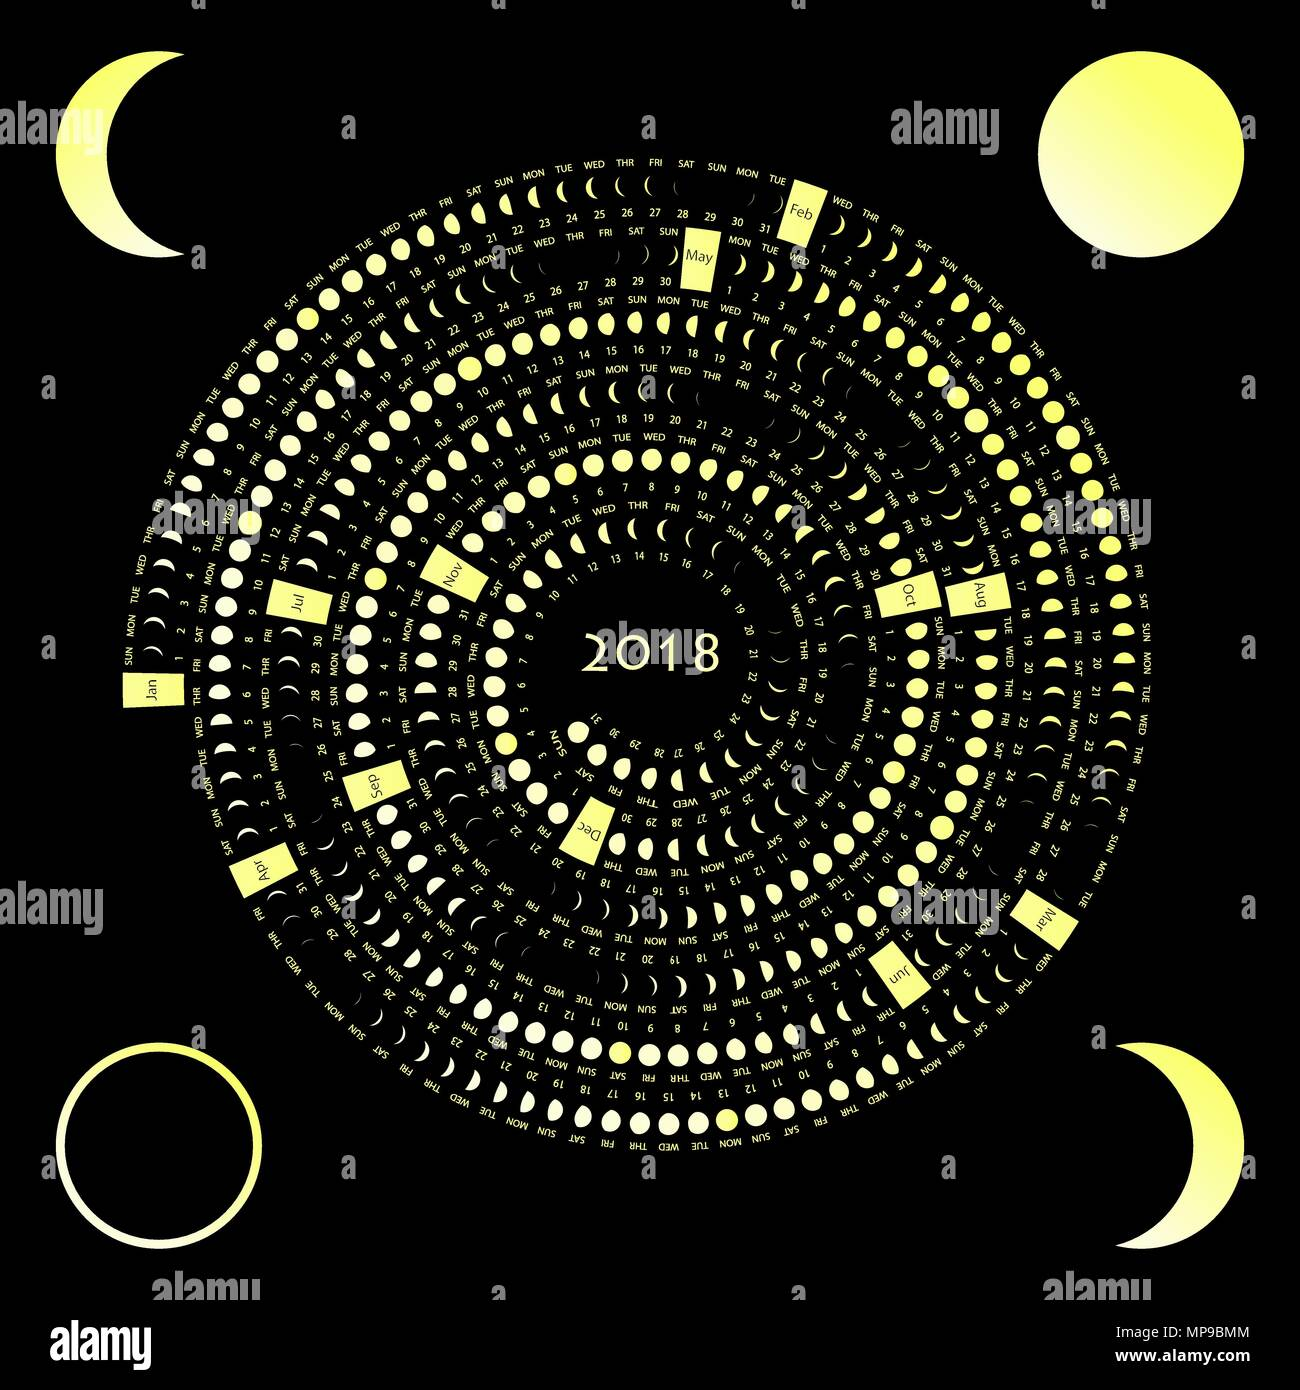 Weekend Calendar Stock Vector Images Alamy Moon Phase Diagram Printable Chart Lunar On A Dark Background 2018